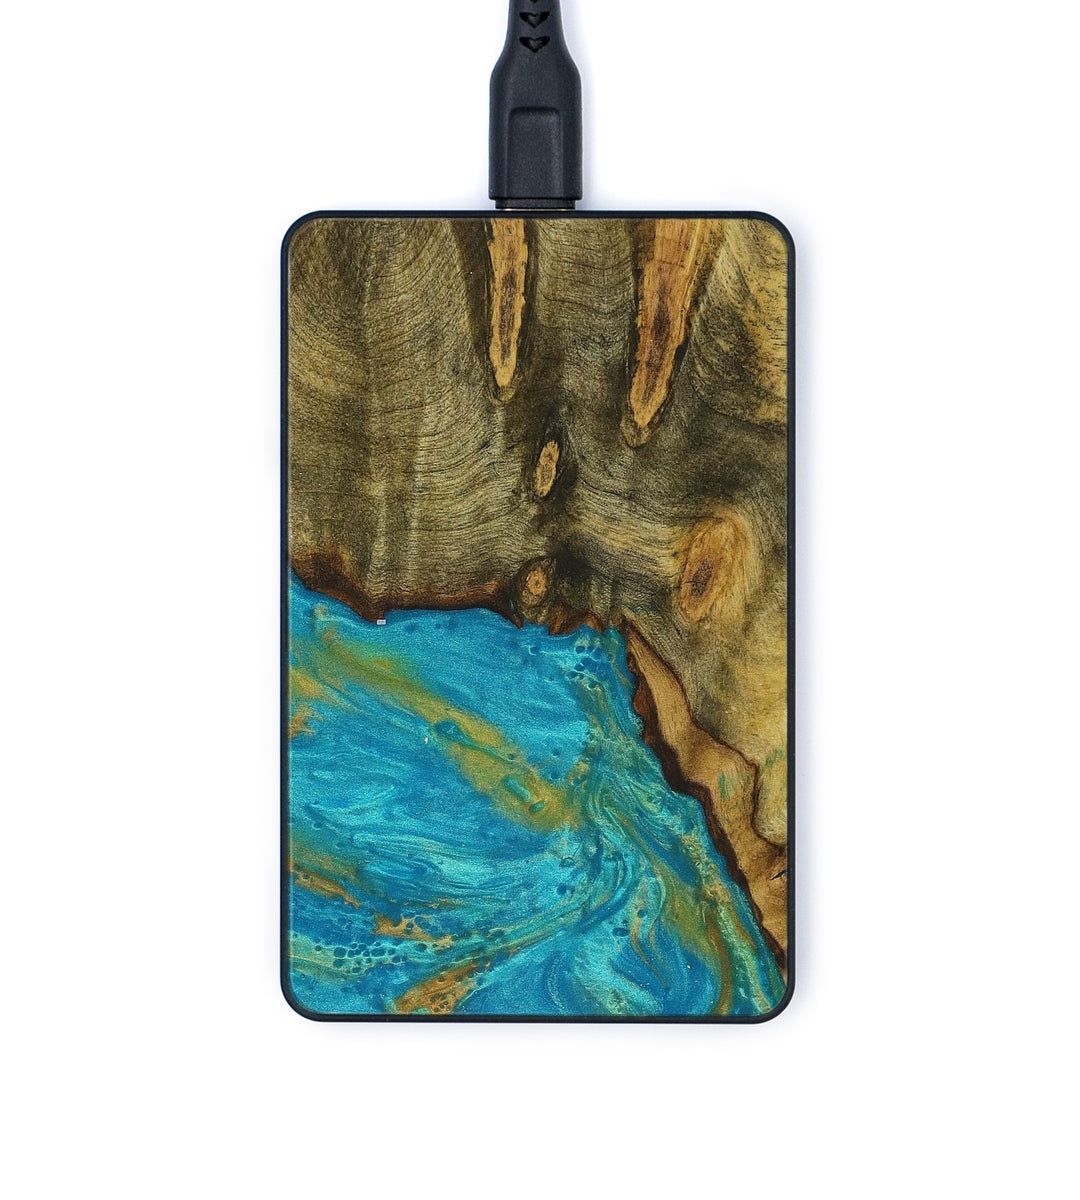 Thin Wood+Resin Wireless Charger - Keri (Teal & Gold, 354511)